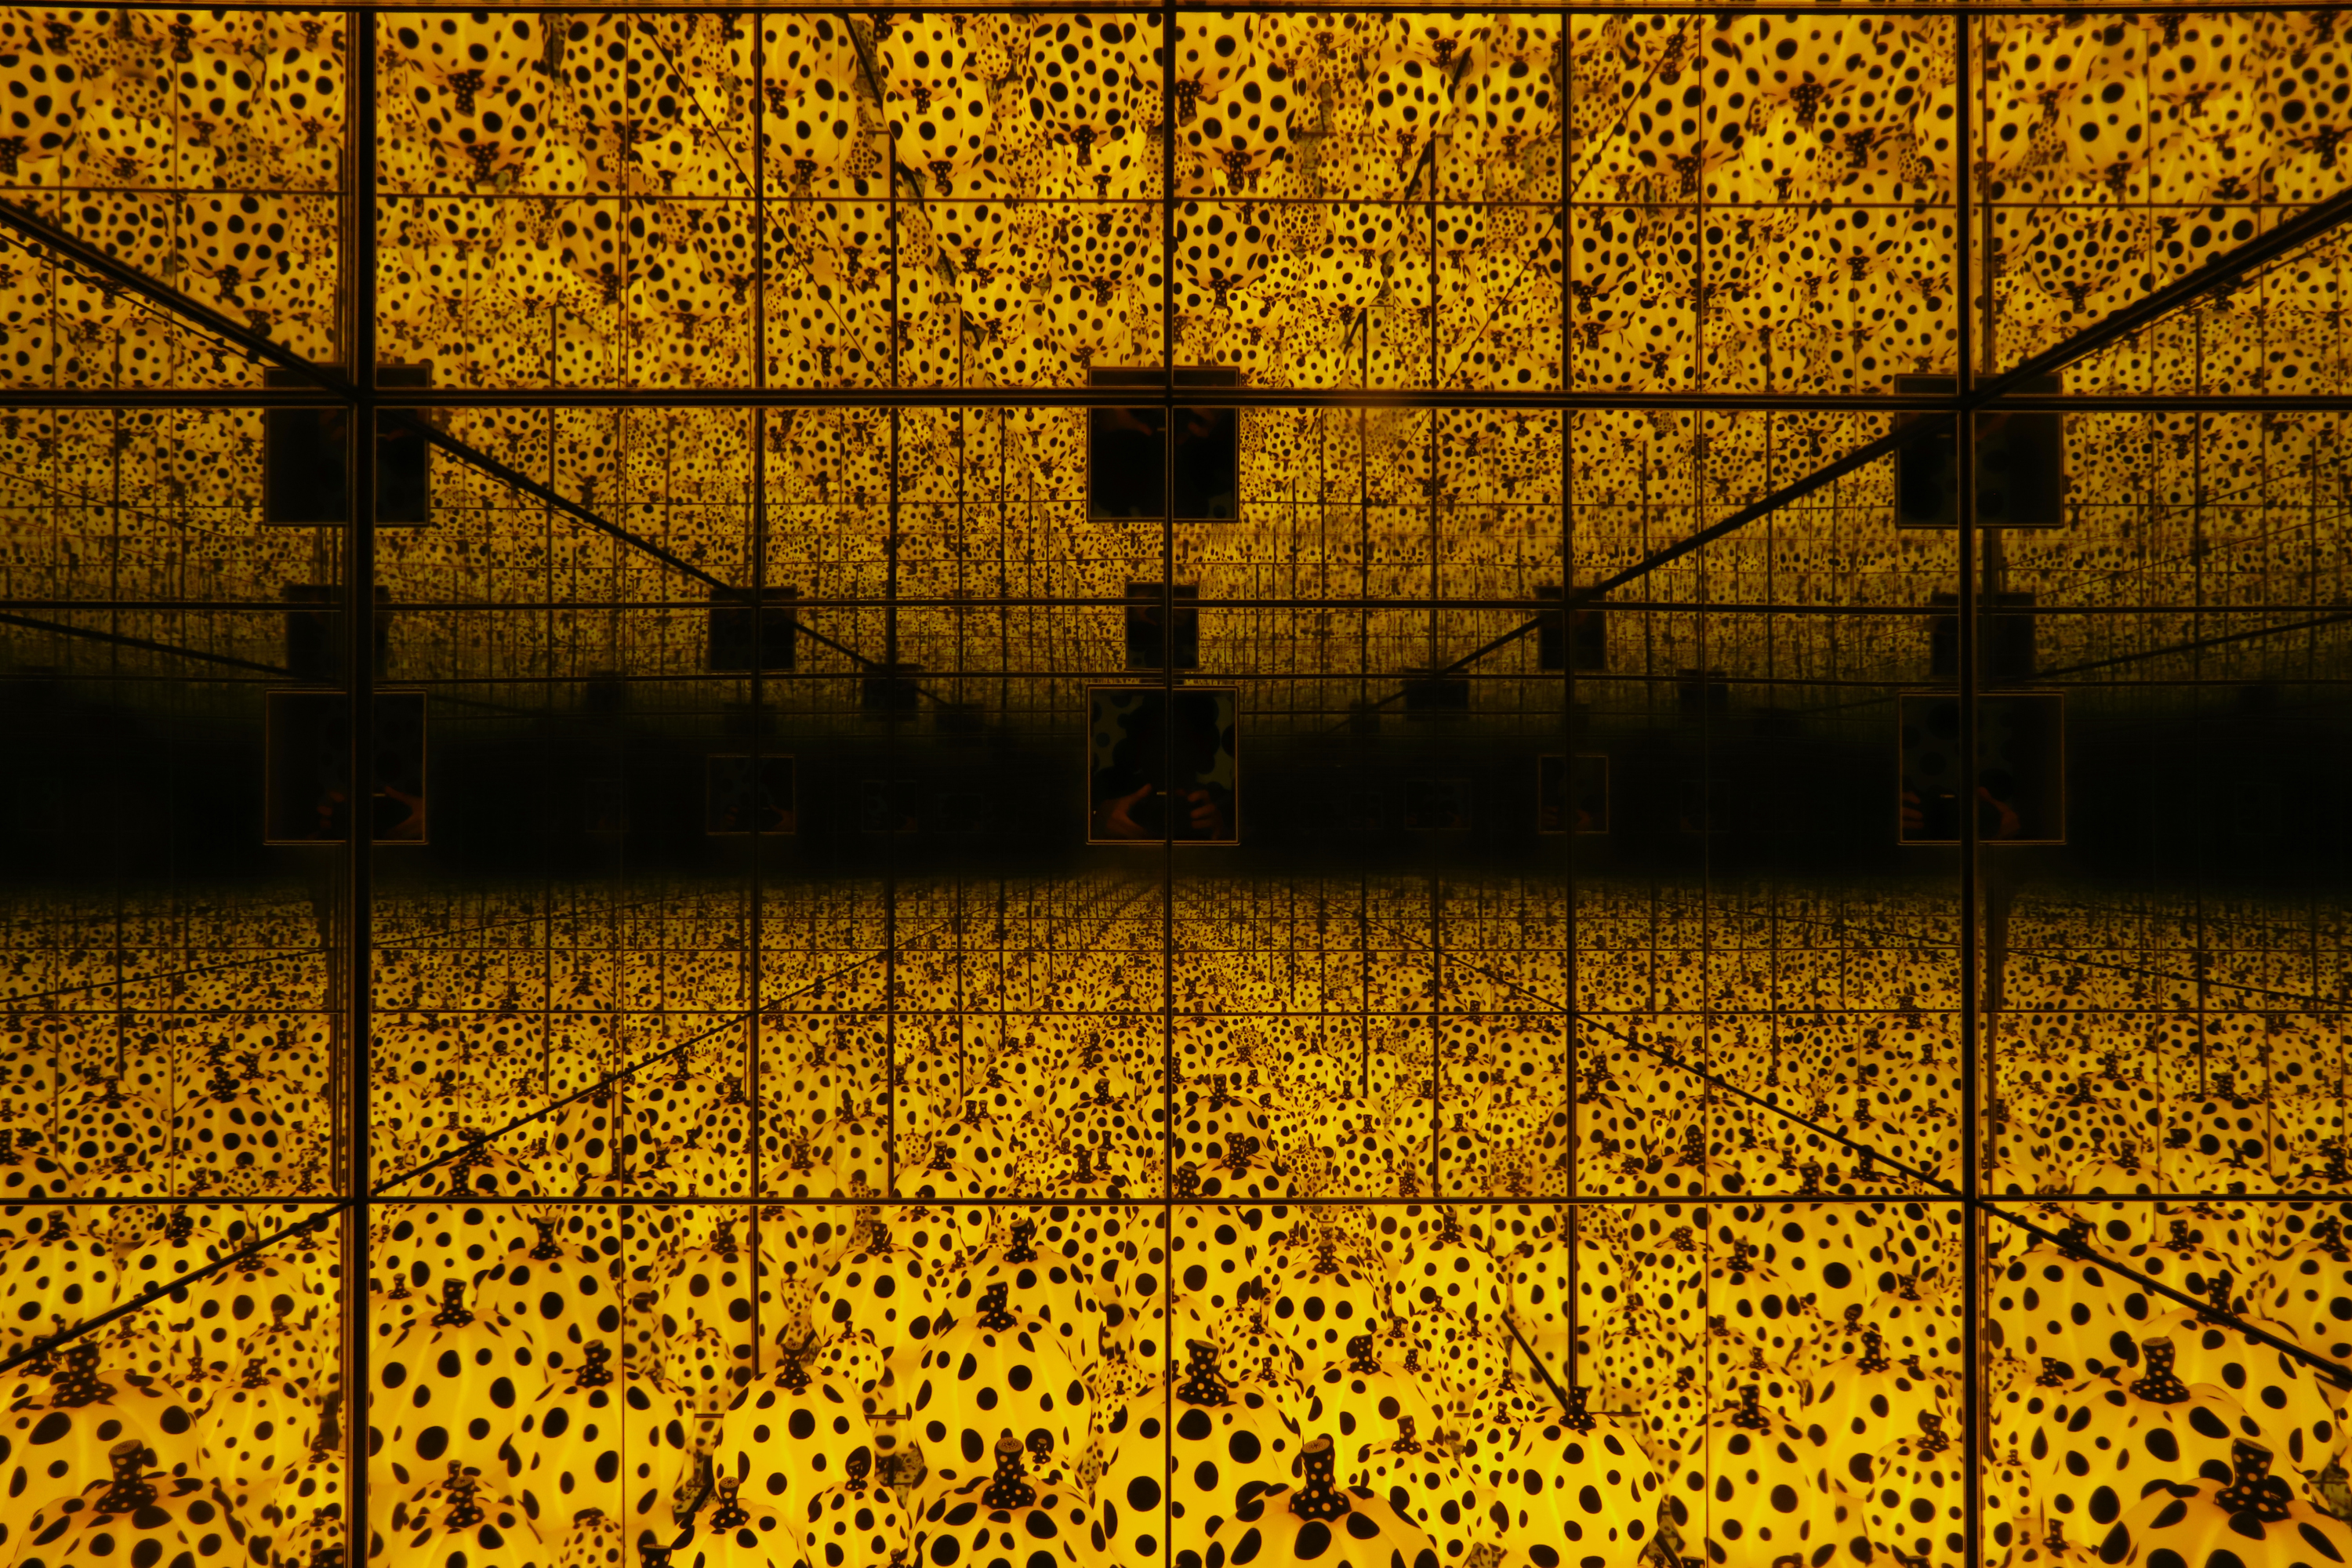 Yayoi Kusama S Infinity Rooms Are More Than Instagram